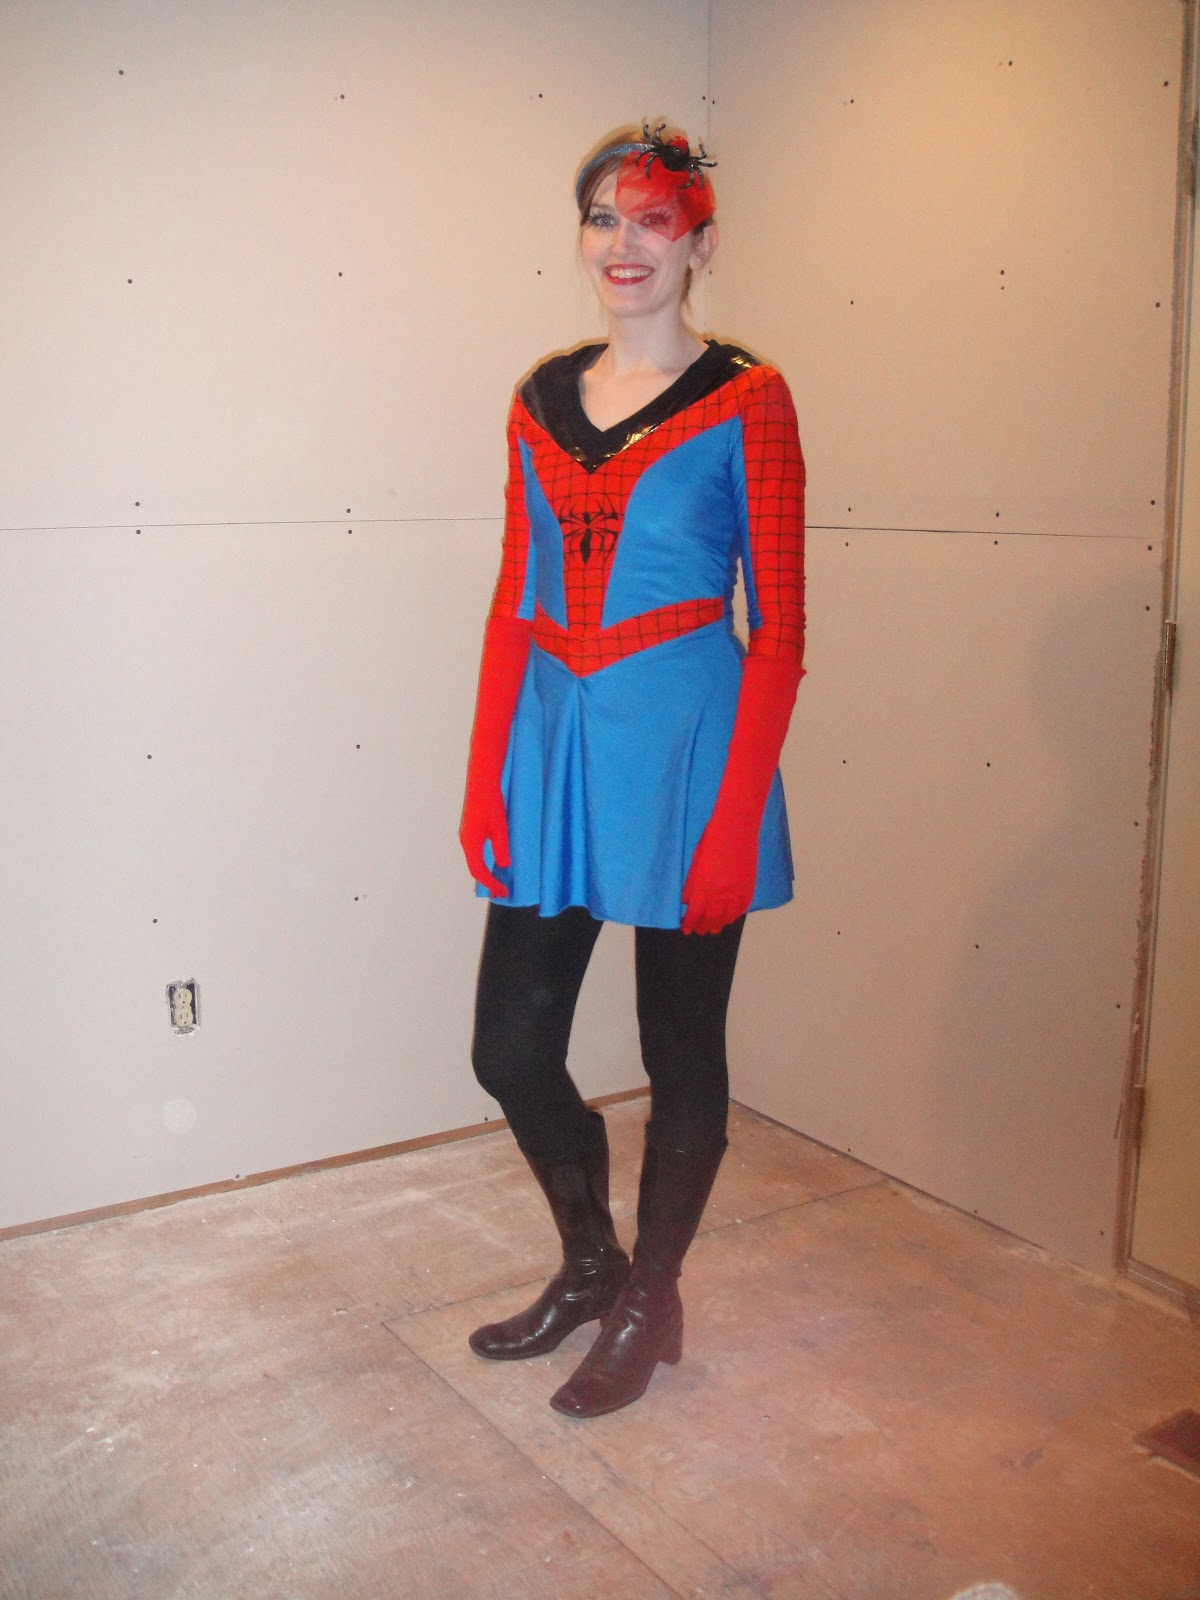 ... $50) for $9 on eBay. Iu0027ll never buy a new costume again! I realize I look more like an ice skater than a superhero but I still think it was cute.  sc 1 st  BiblioBags & BiblioBags: Where Every Purse has a Story...: October 2011